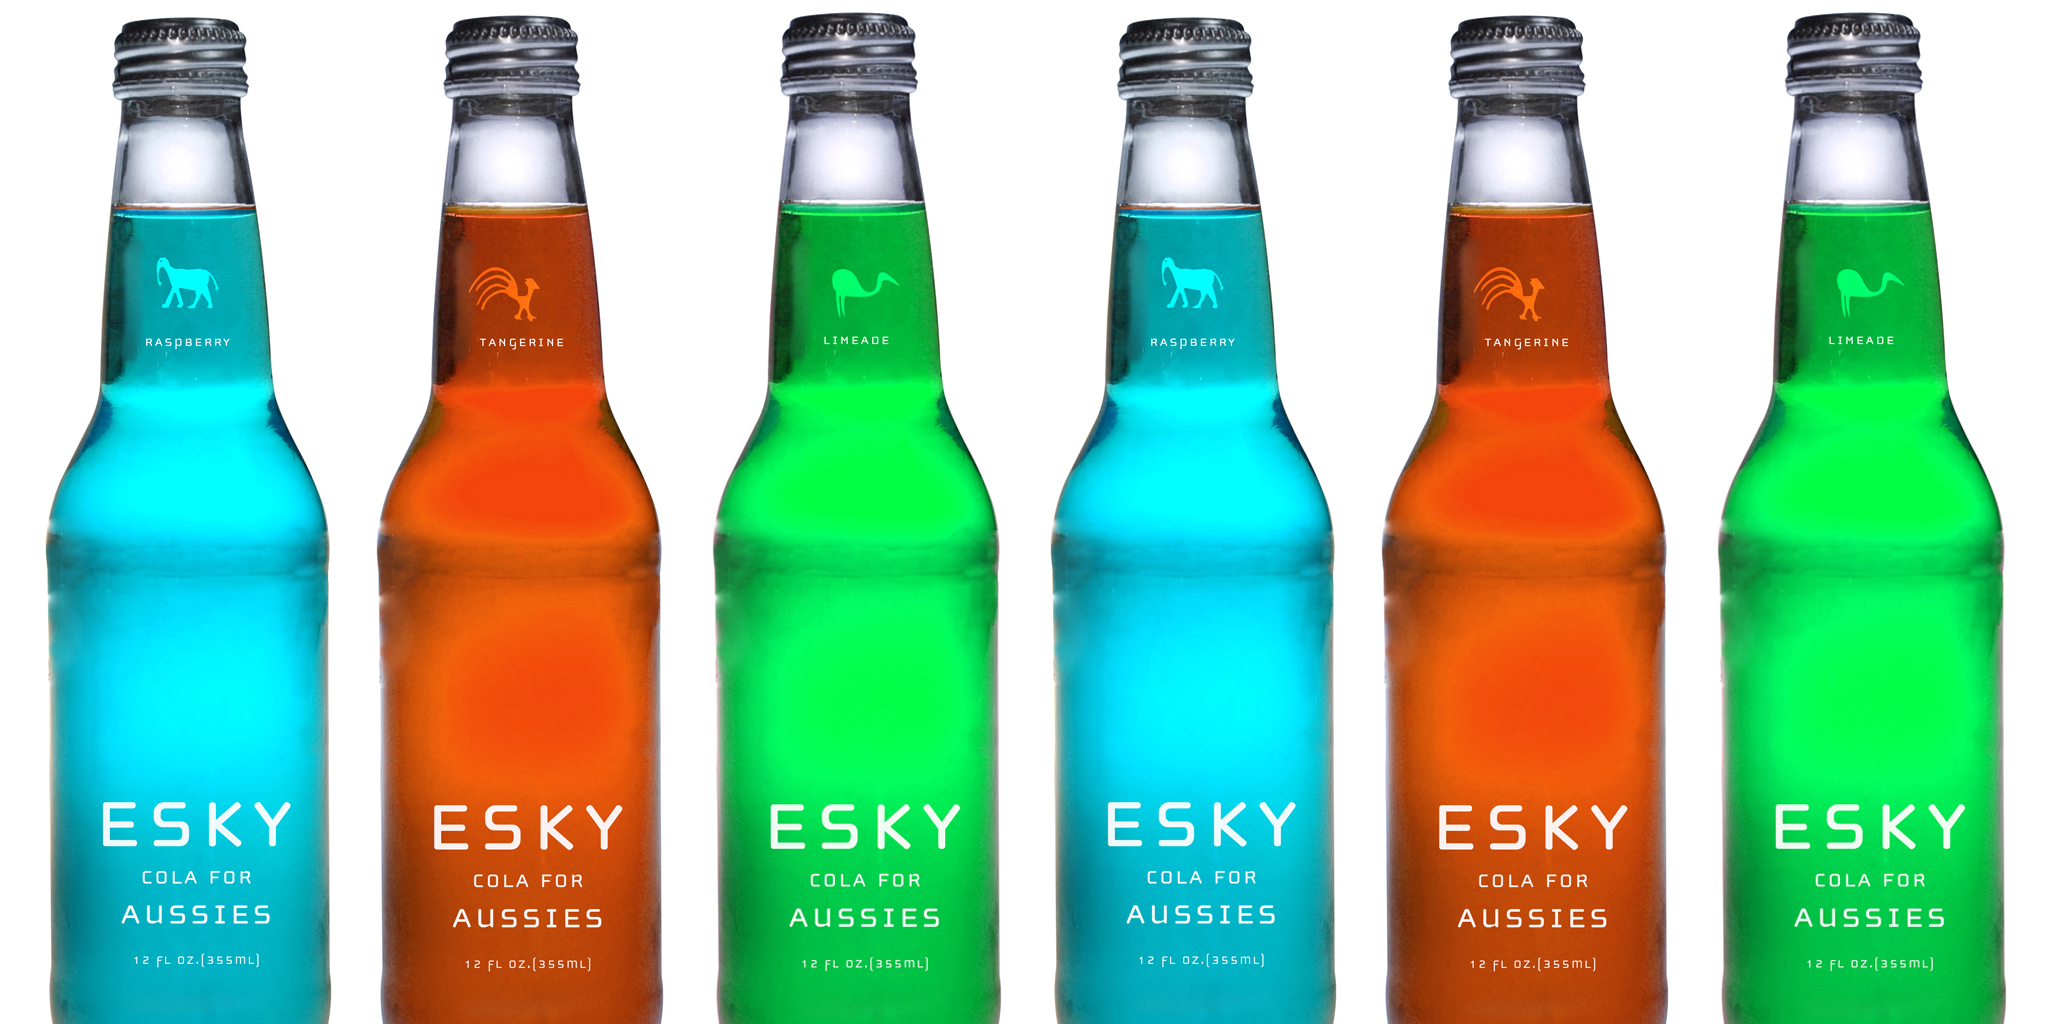 PACKAGING  Esky Cola  This proposed packaging line uses clean, clear modern lines of straight forward bottling with simple mono color typography and ethnic pictograms. The result is a product that captures a young and current Australian youth in a sophisticated fashion.